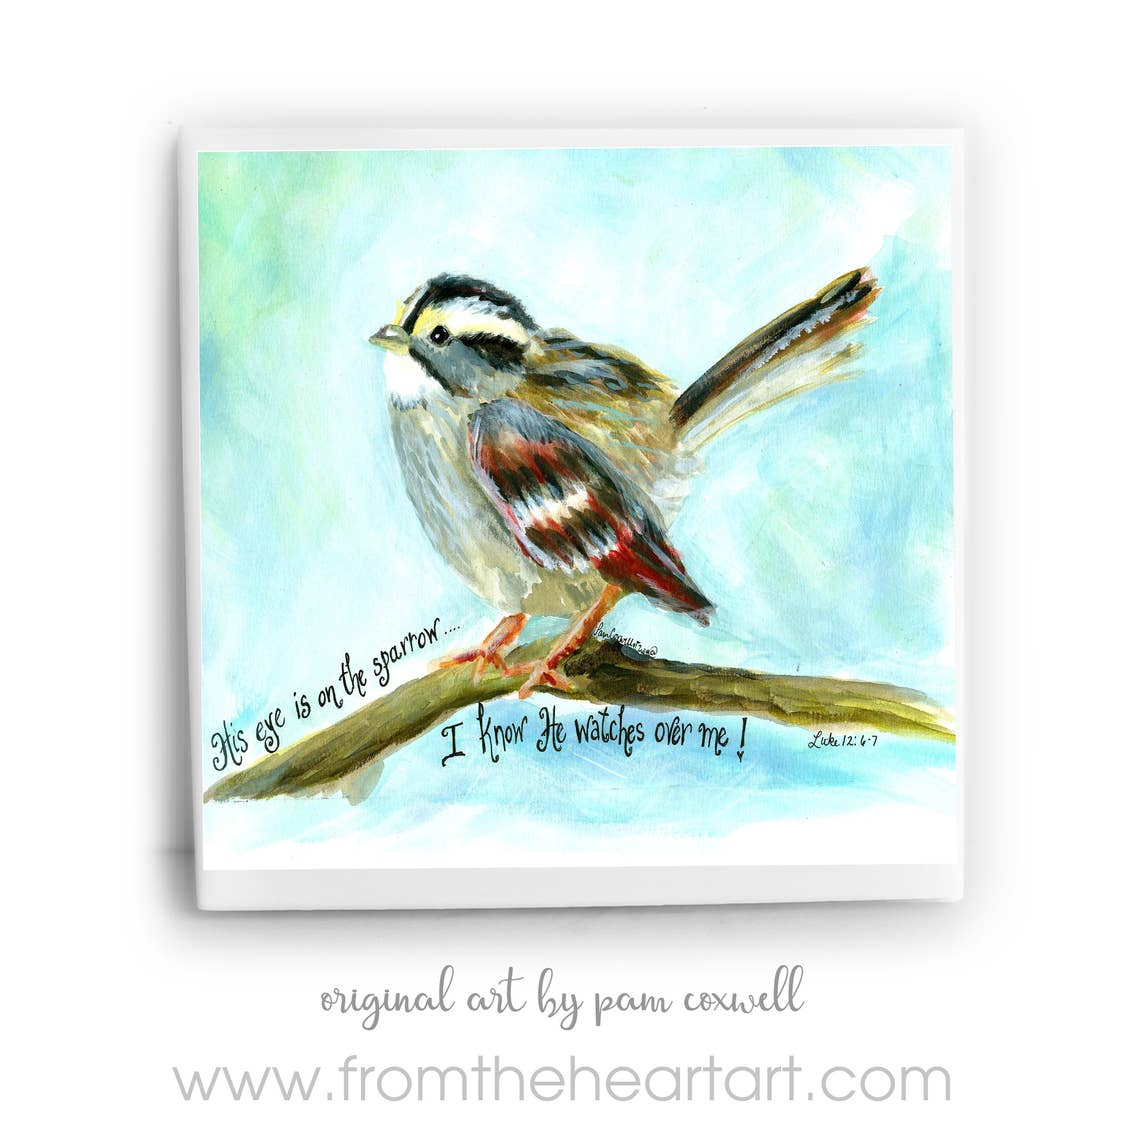 Blue Sparrow Ceramic Tile by Pam Coxwell